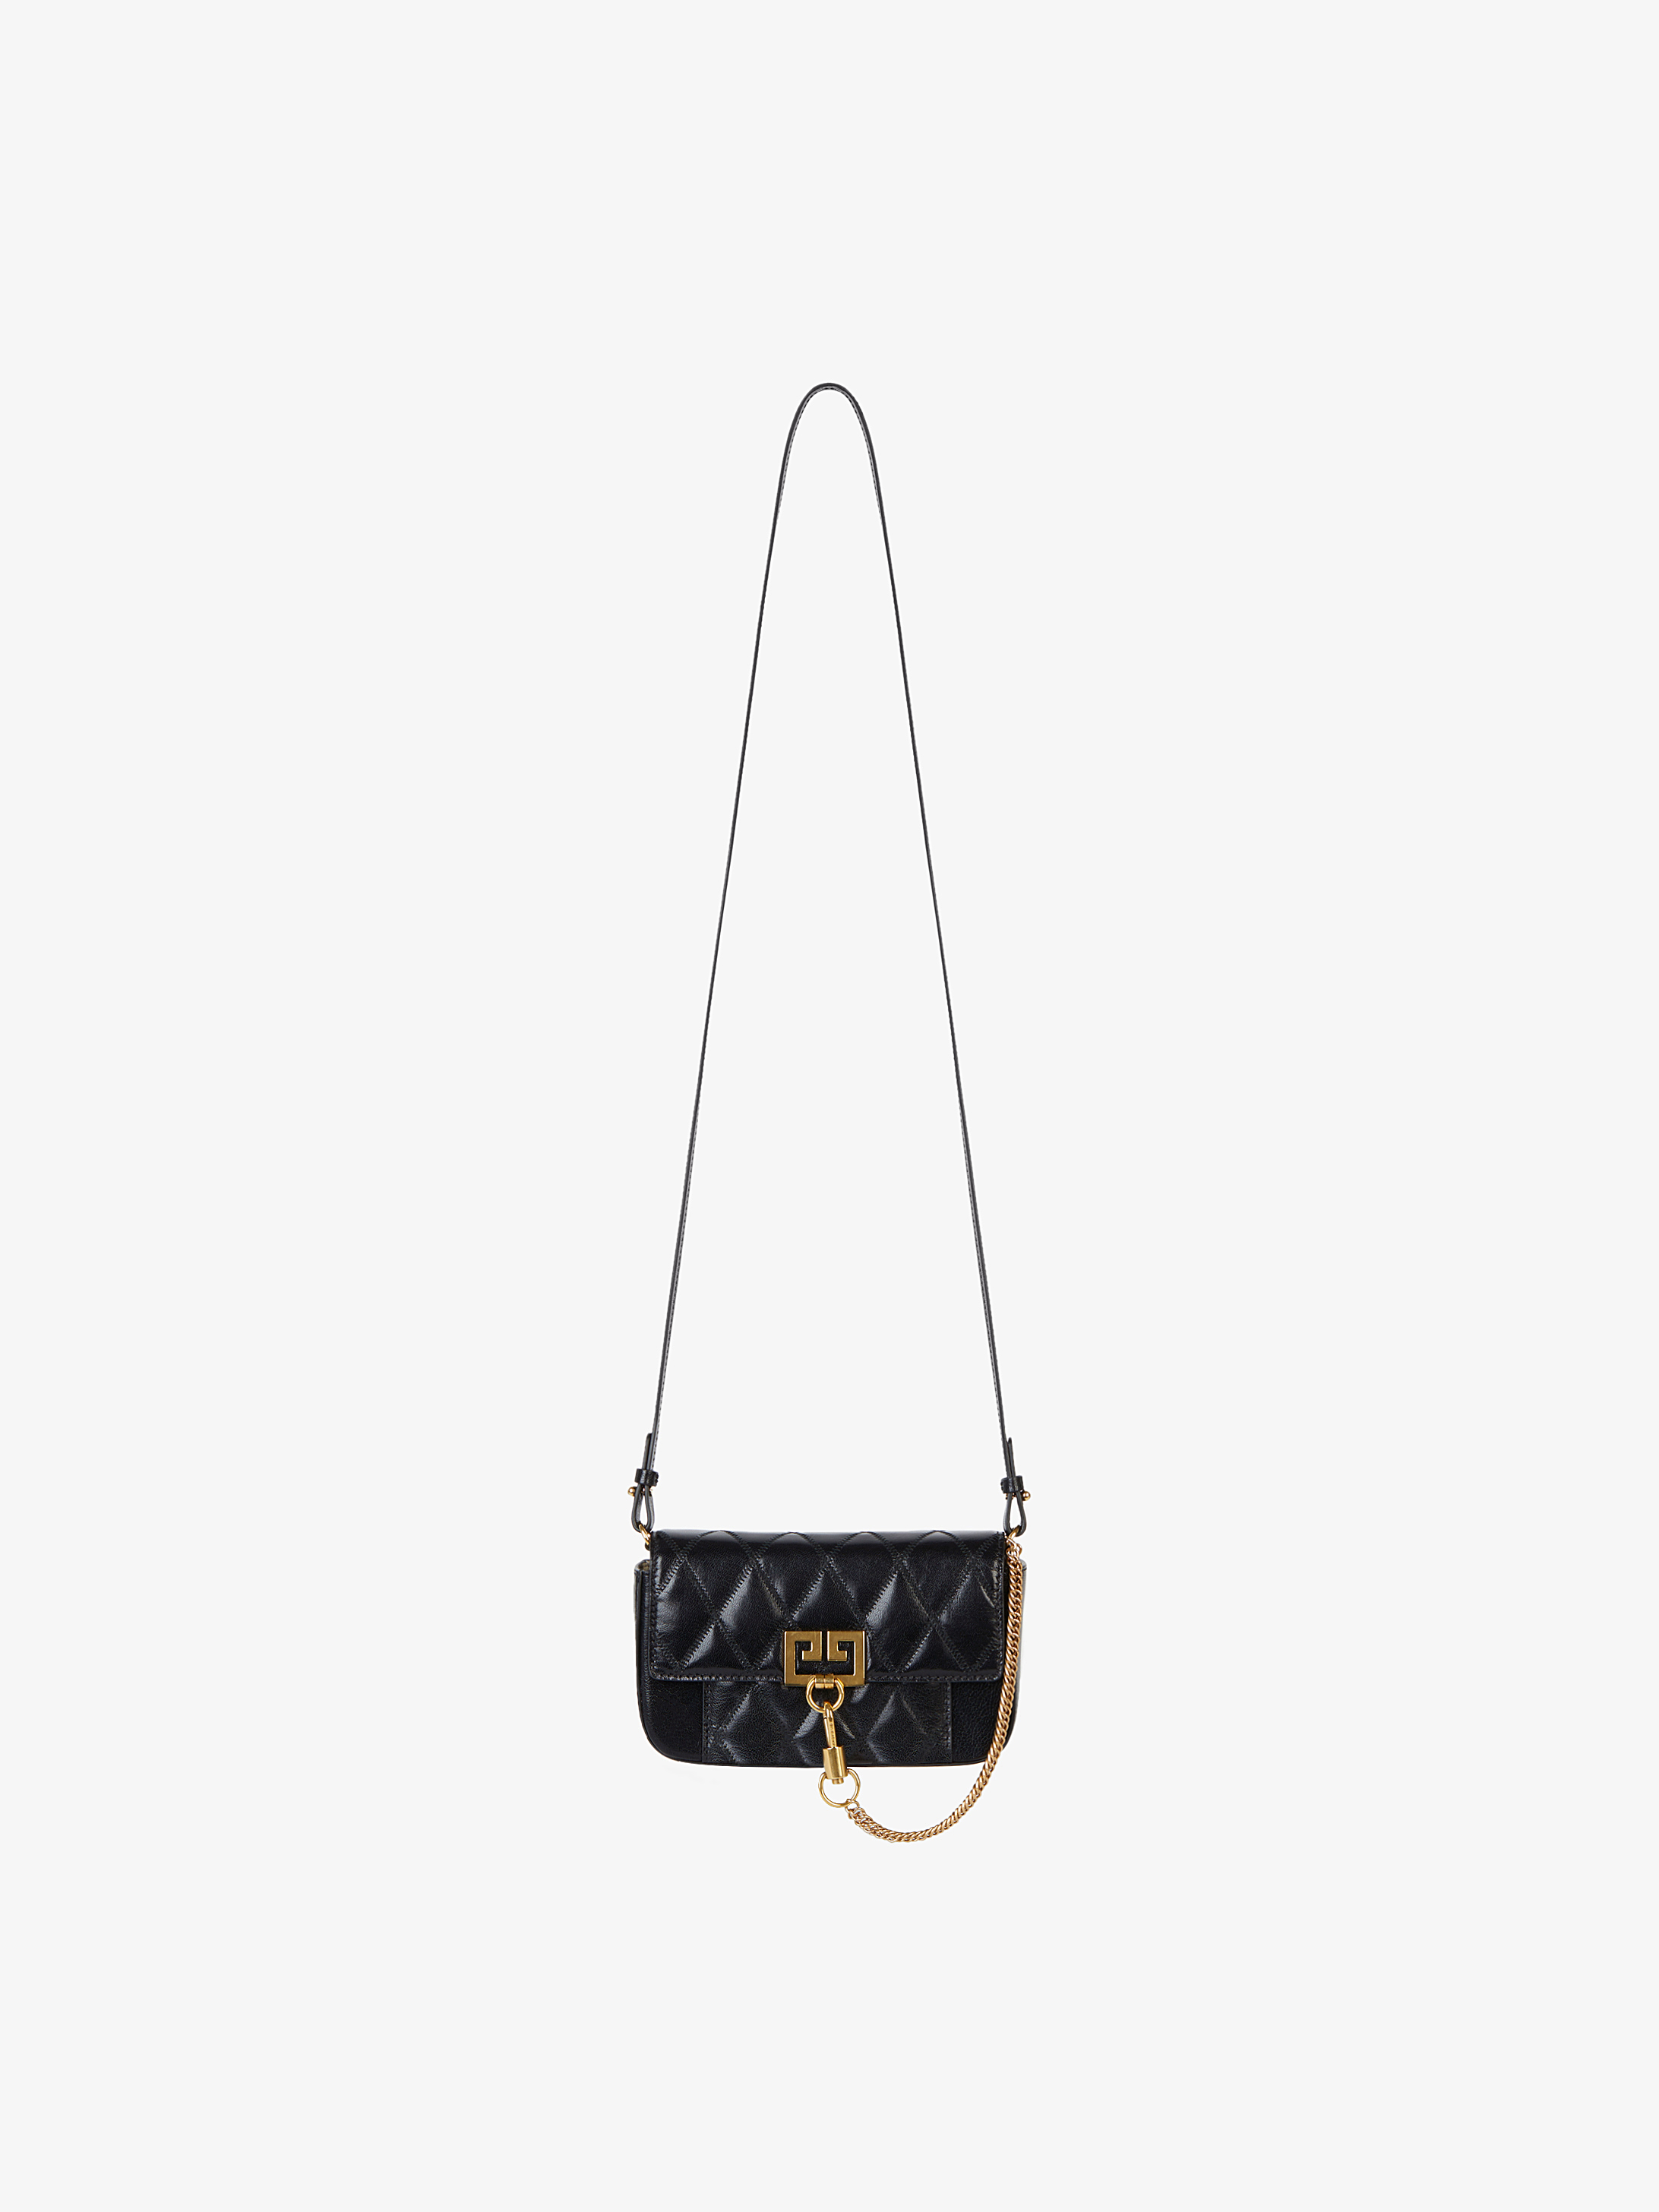 Mini Pocket bag in diamond quilted leather